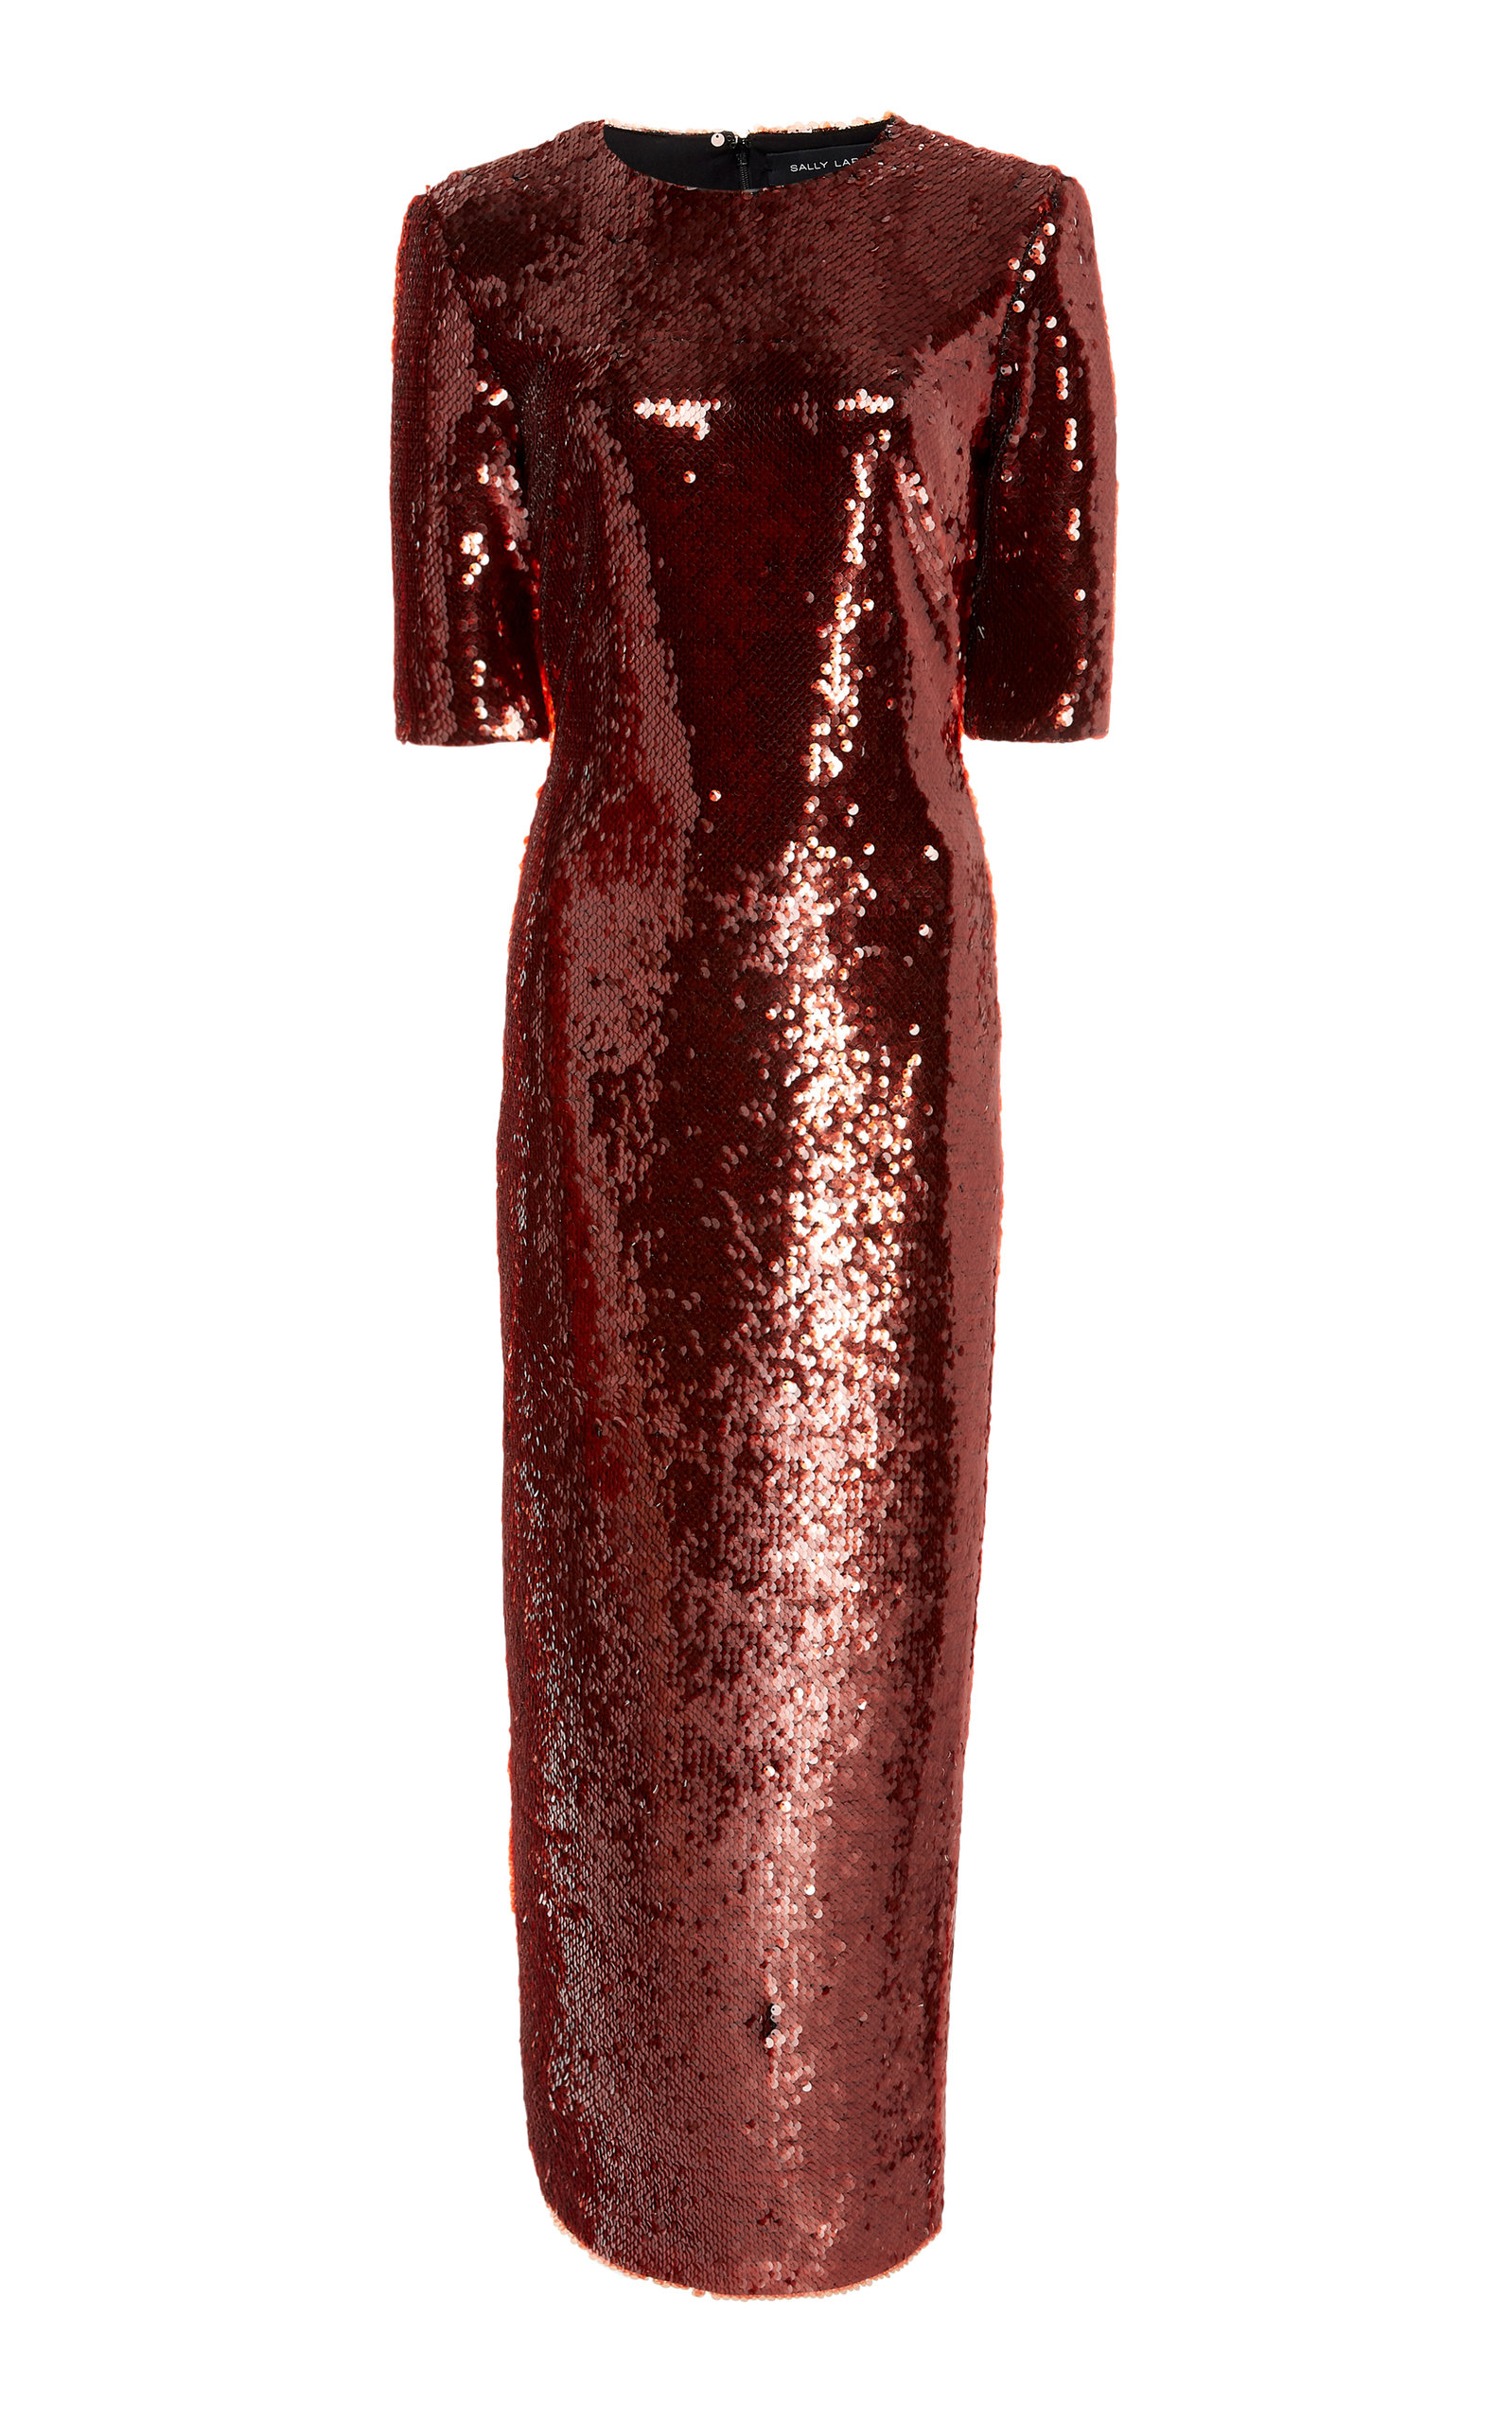 Sally Lapointe SEQUINED MAXI DRESS SIZE: 10